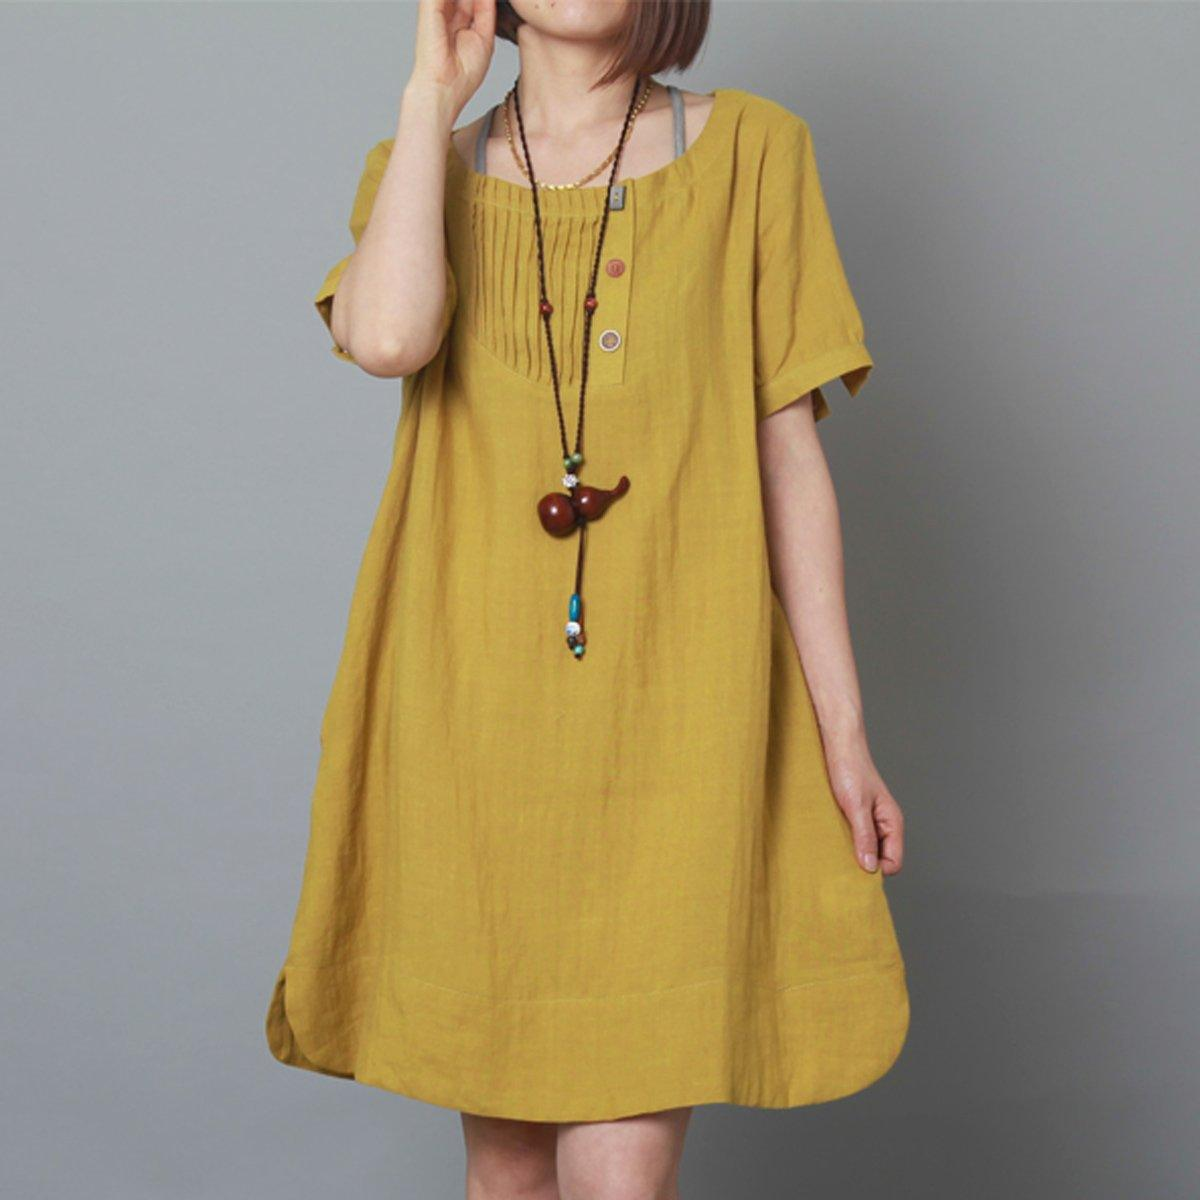 Yellow linen dress summer shift dress plus size sundress-Will be available soon